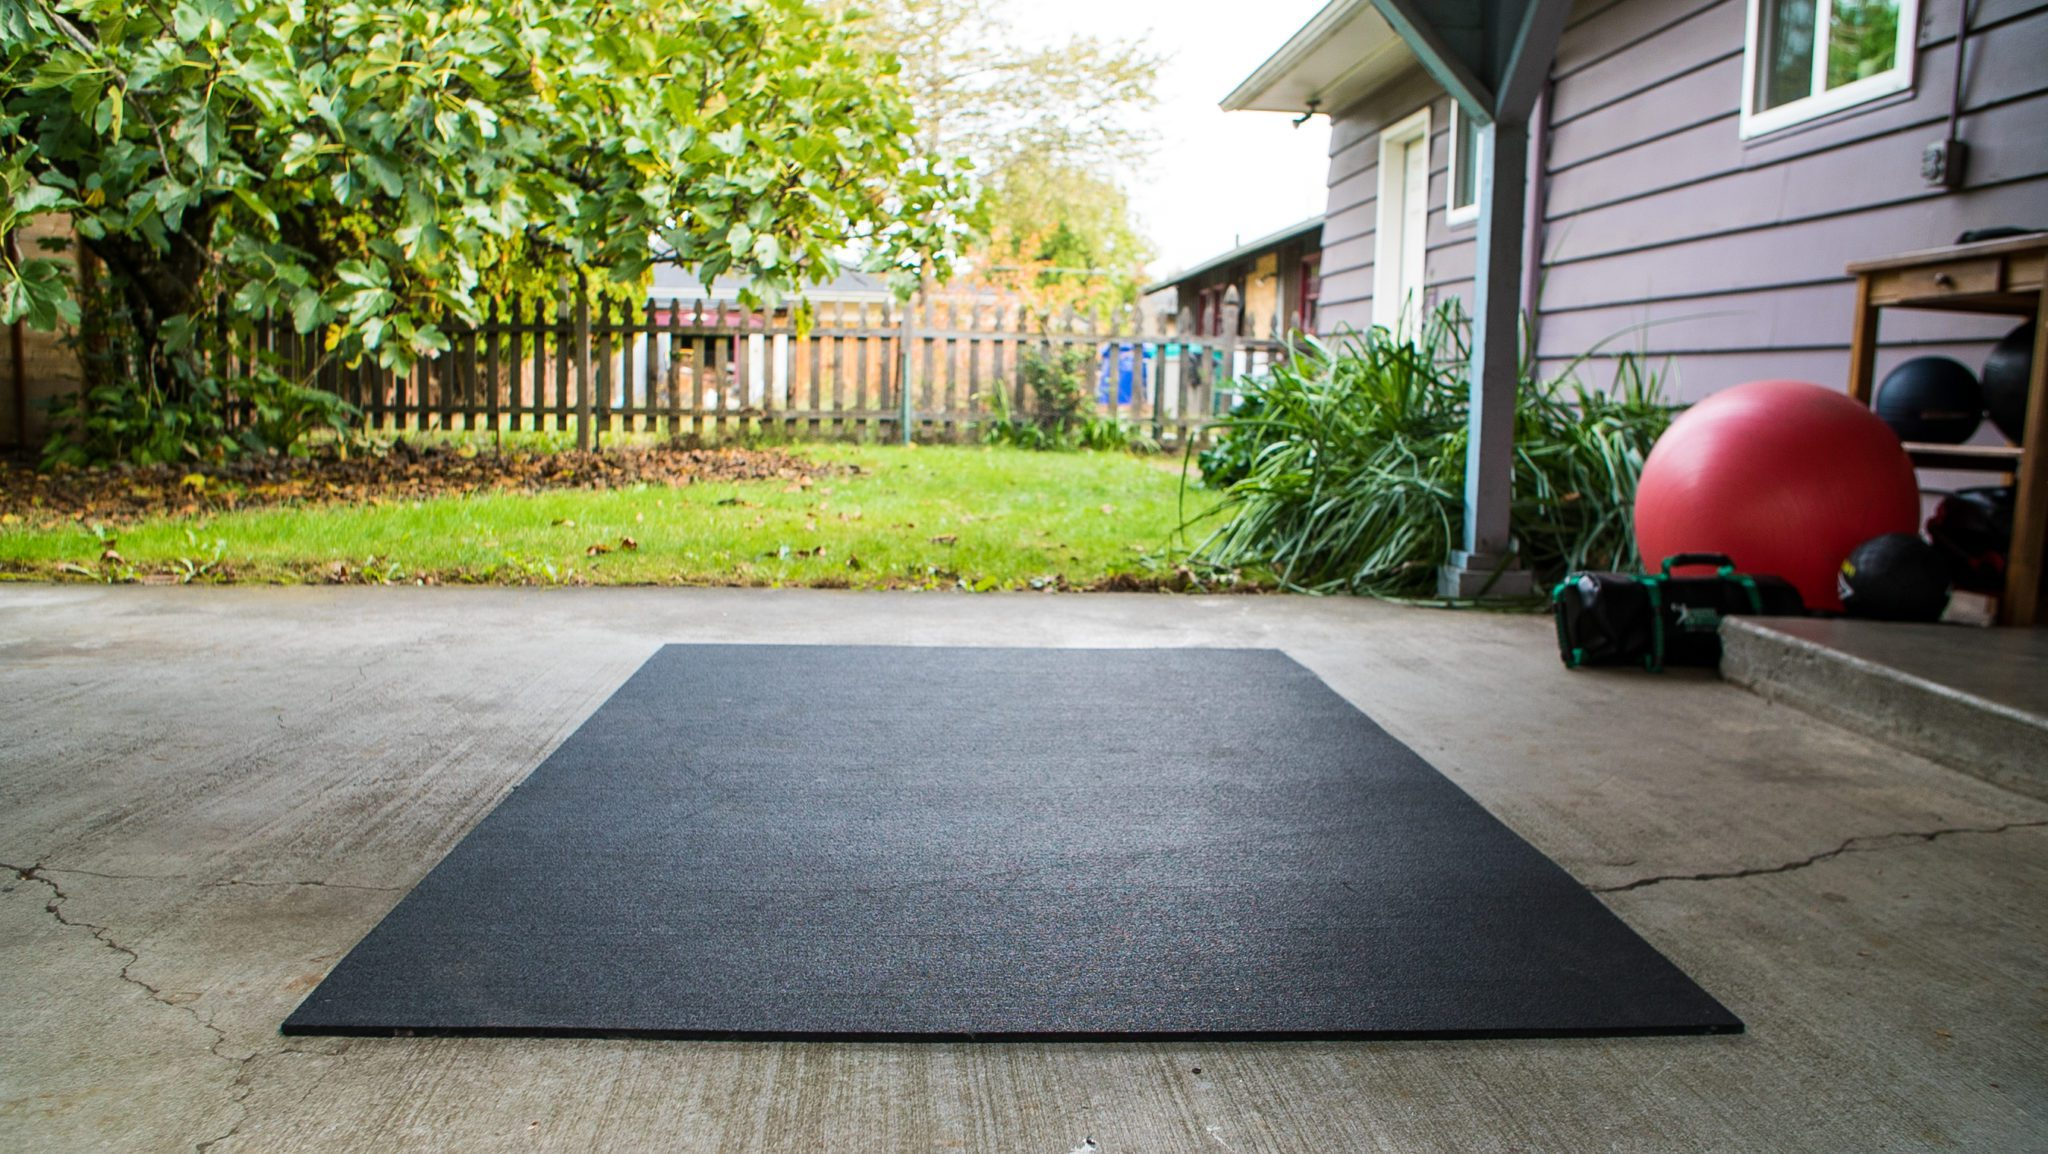 My home, outdoor movement space.